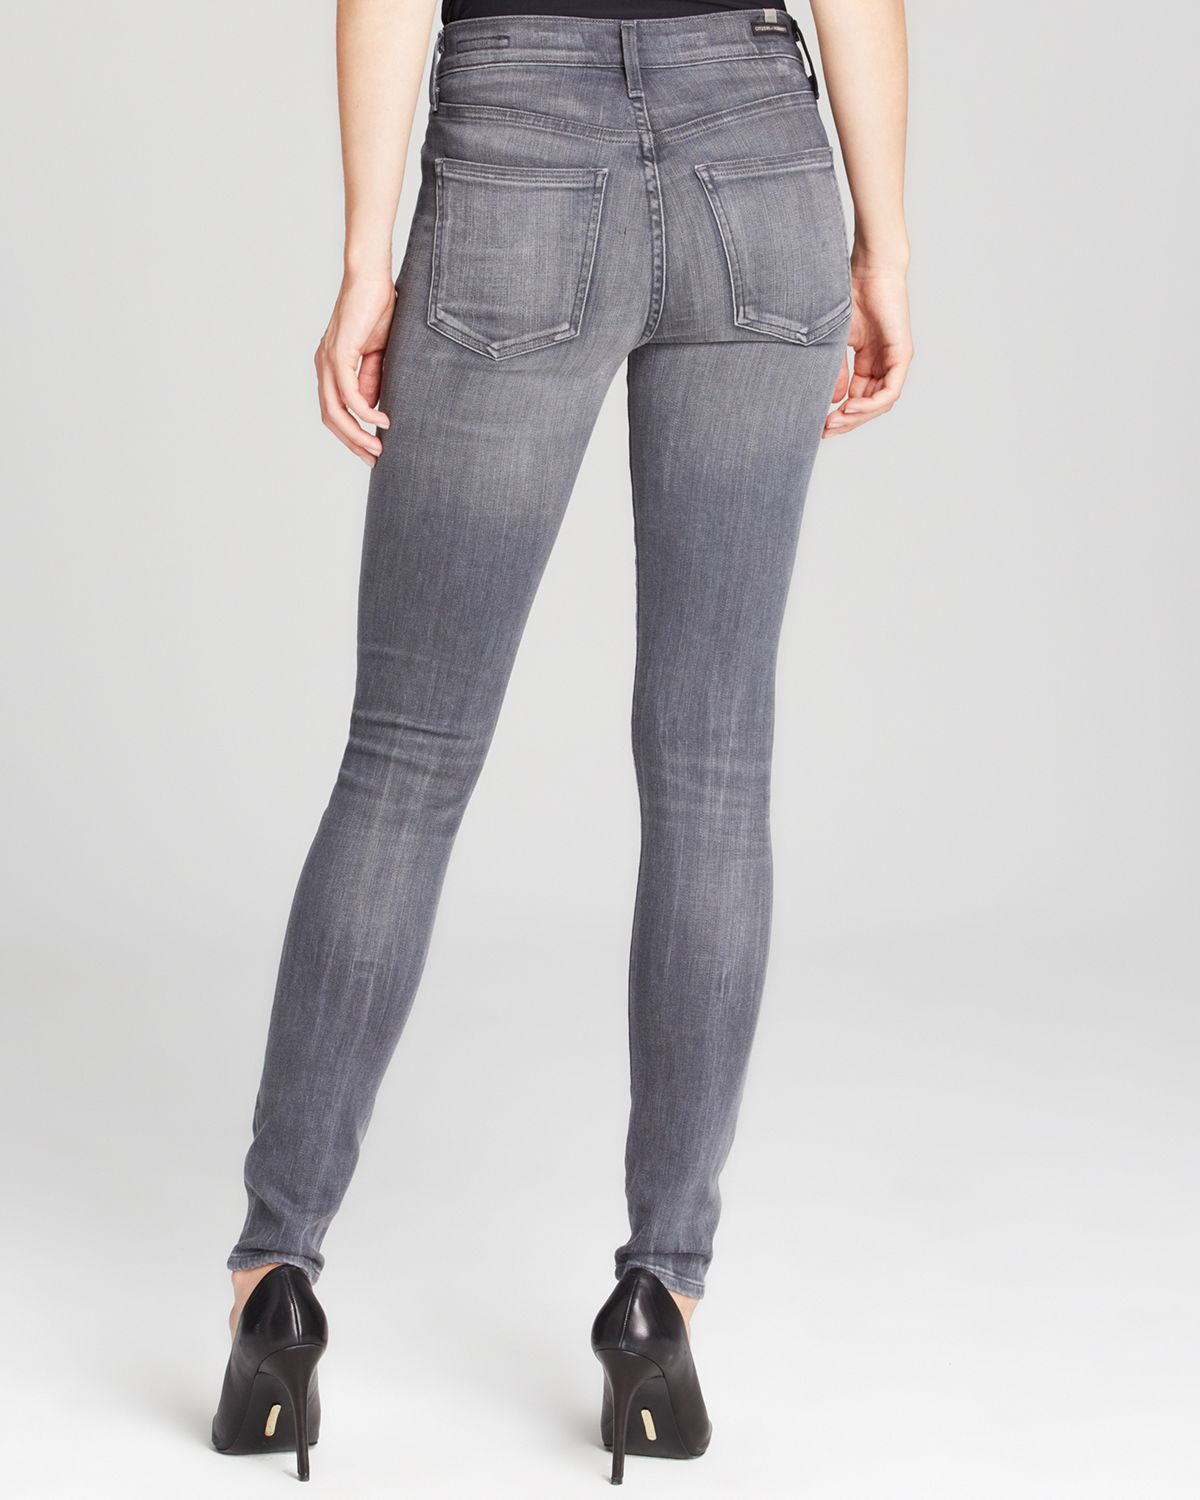 lyst citizens of humanity jeans rocket high rise skinny in cinder in gray. Black Bedroom Furniture Sets. Home Design Ideas